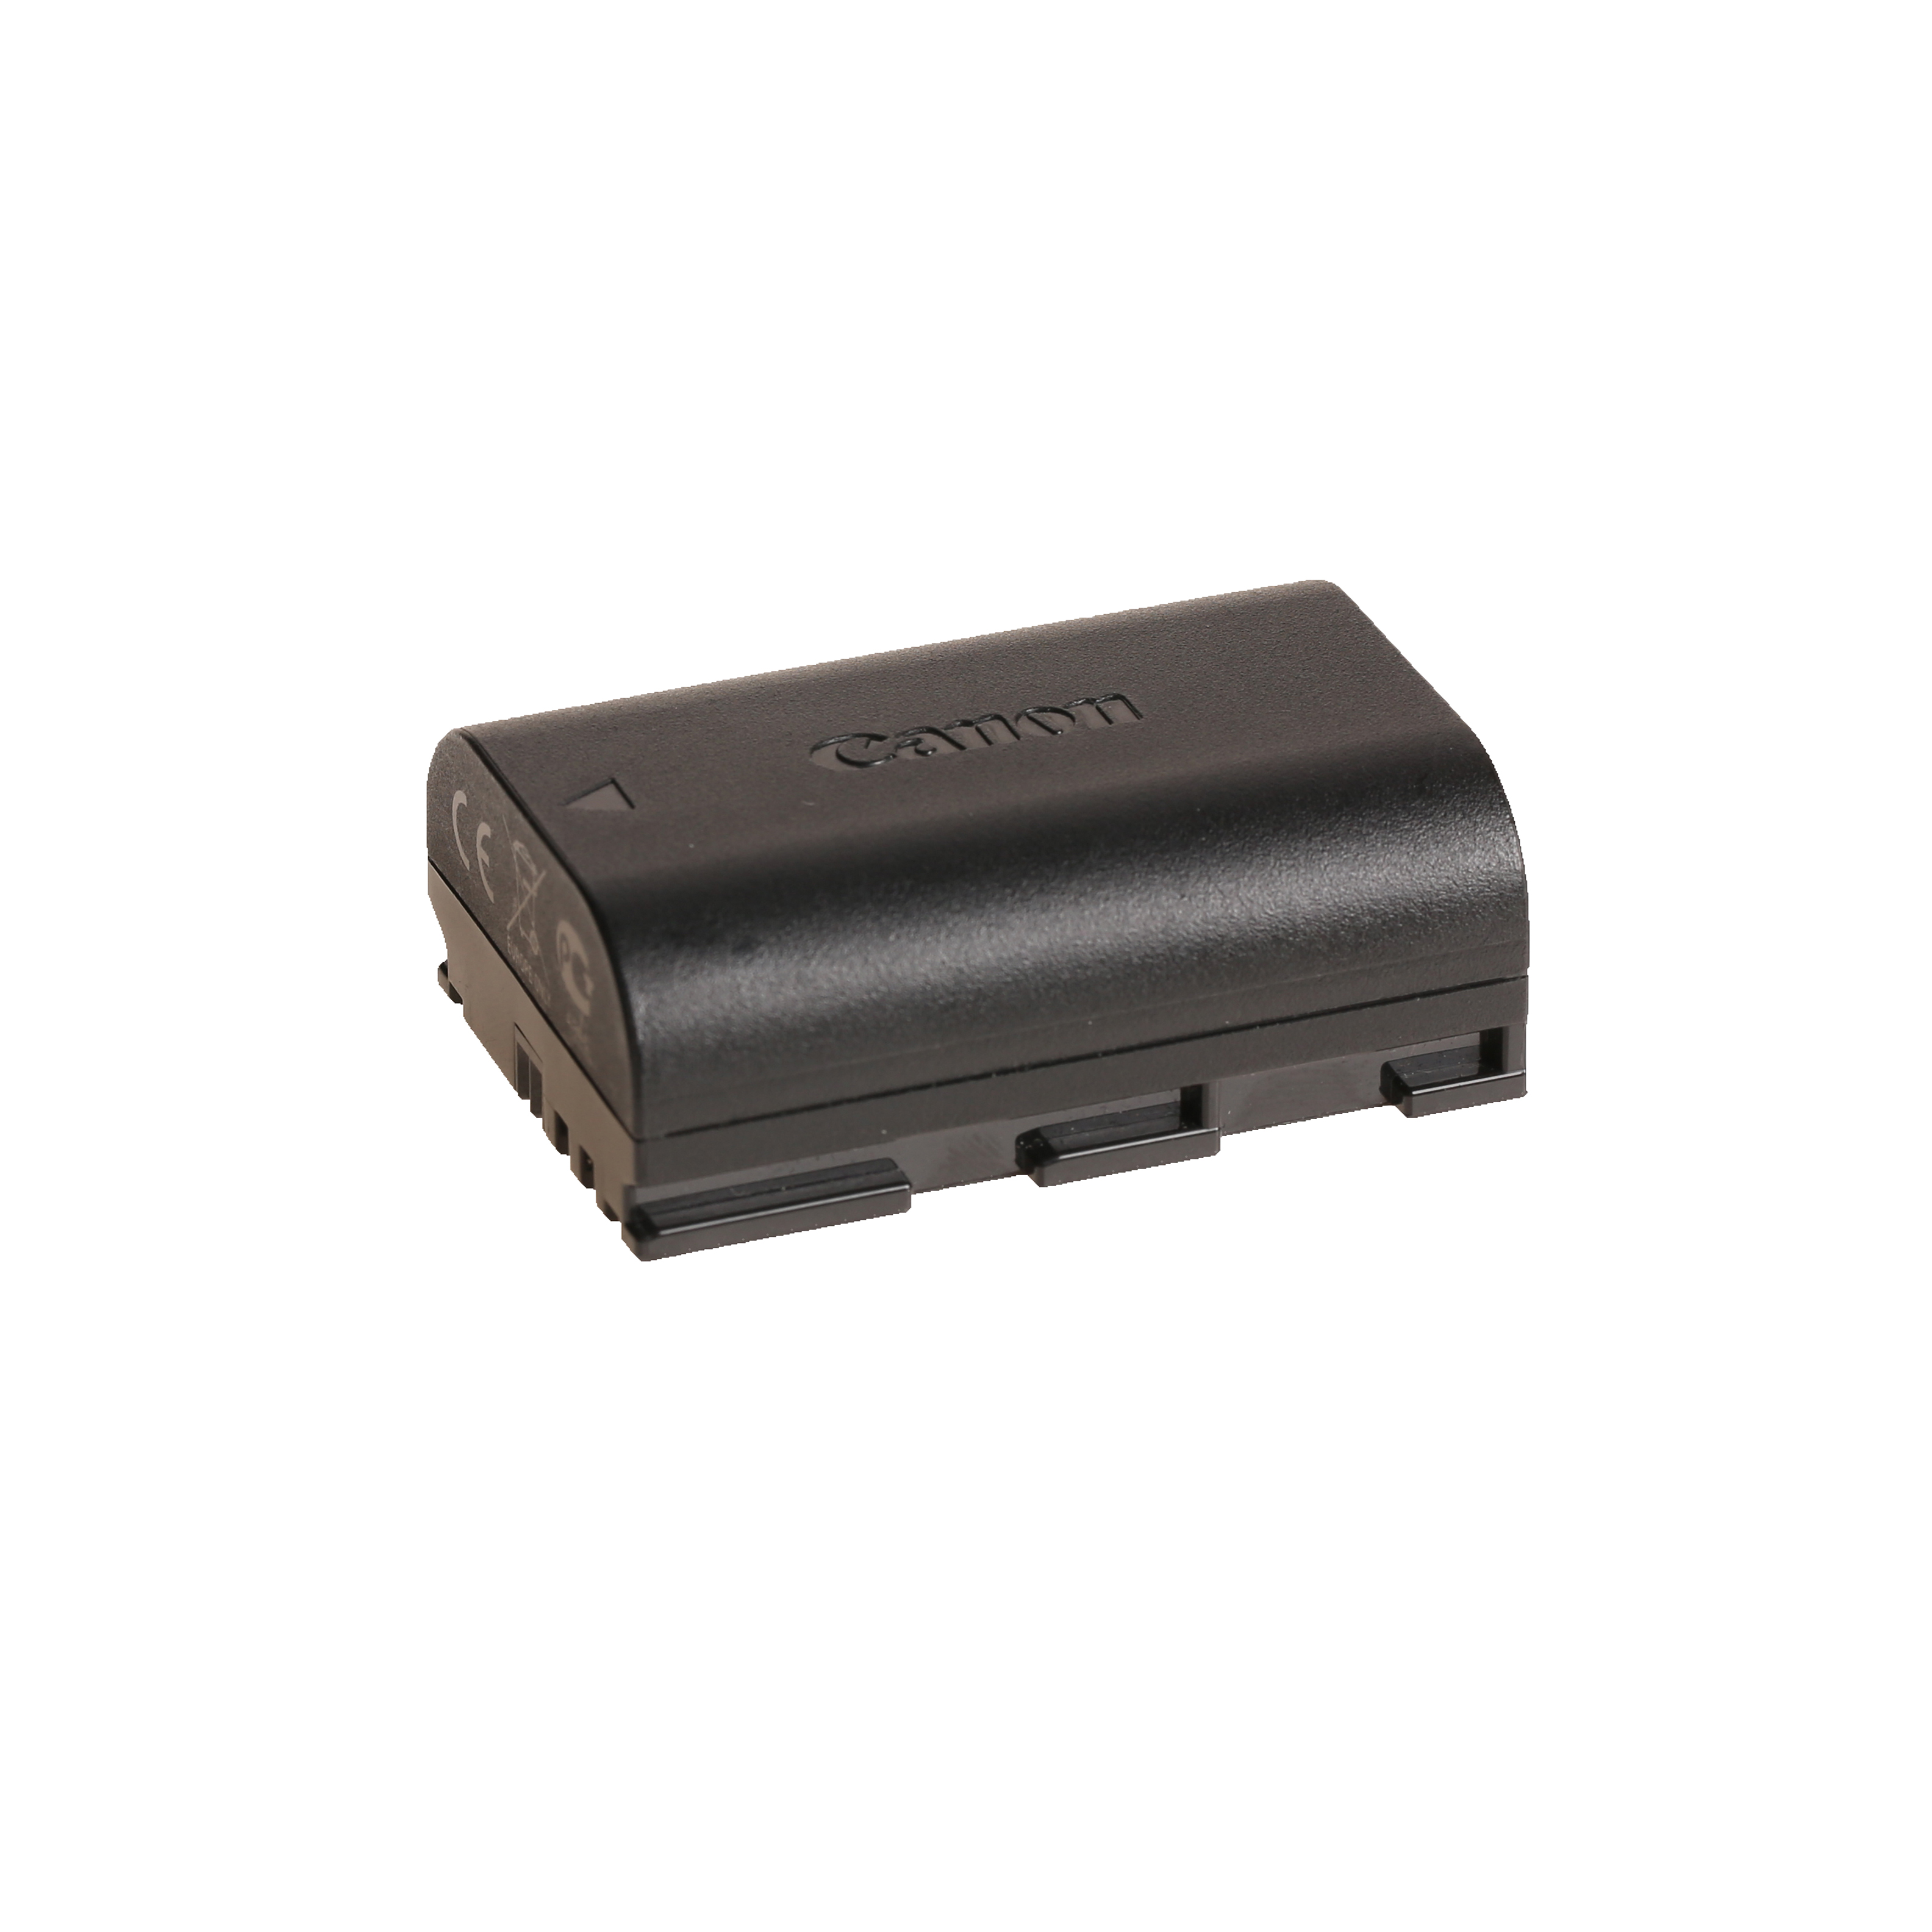 Canon Battery Pack LP-E6